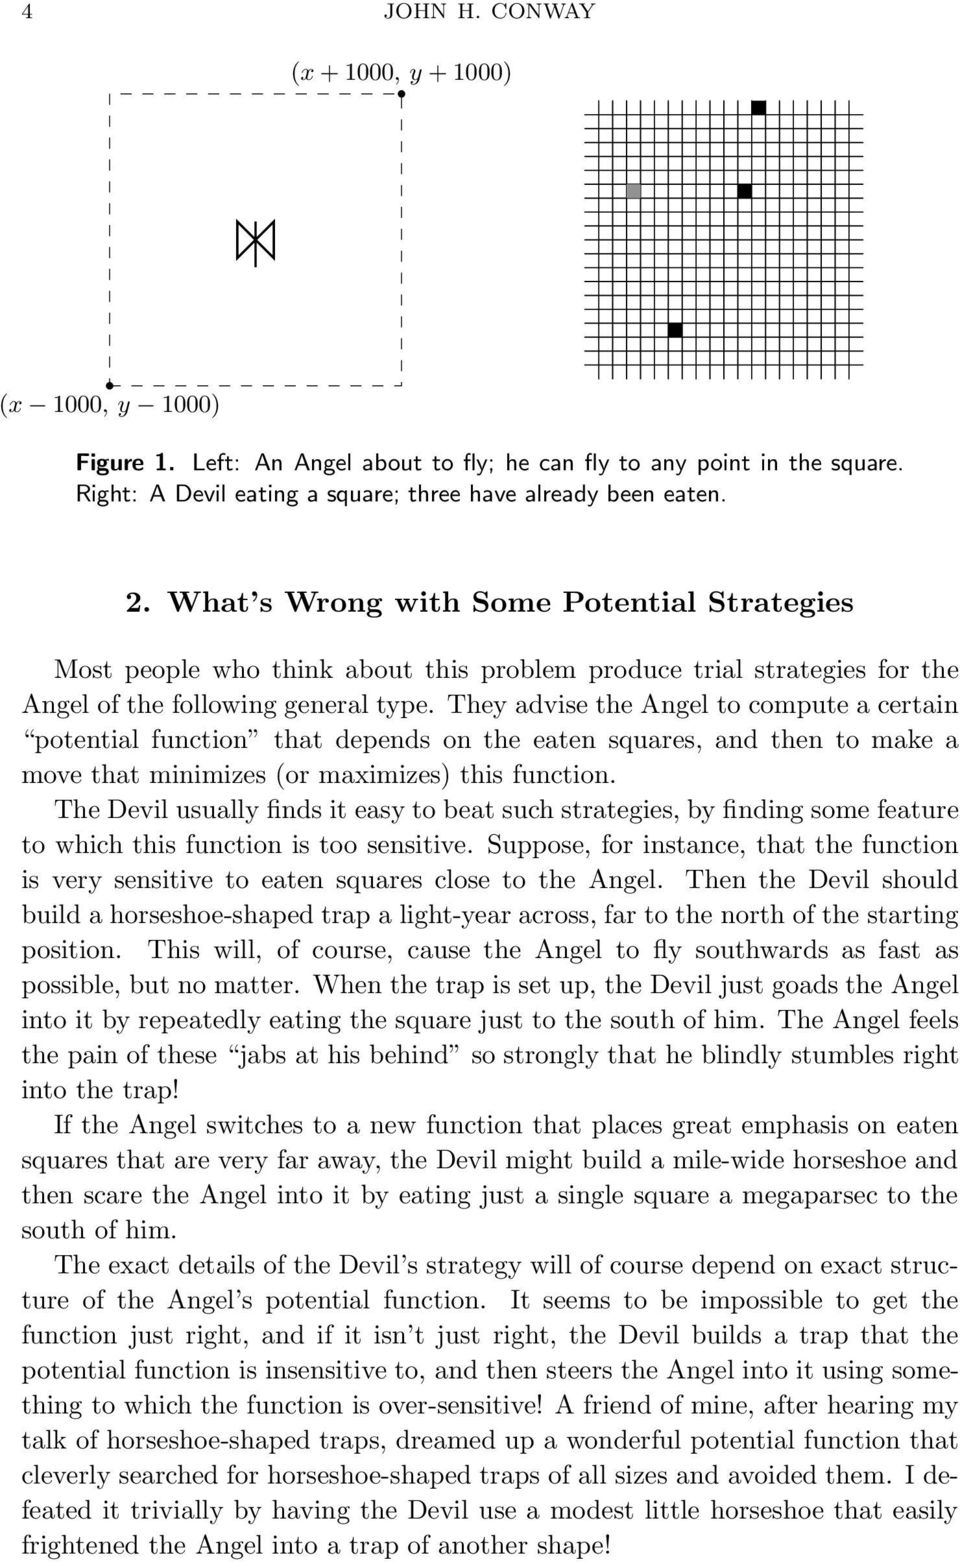 They advise the Angel to compute a certain potential function that depends on the eaten squares, and then to make a move that minimizes (or maximizes) this function.